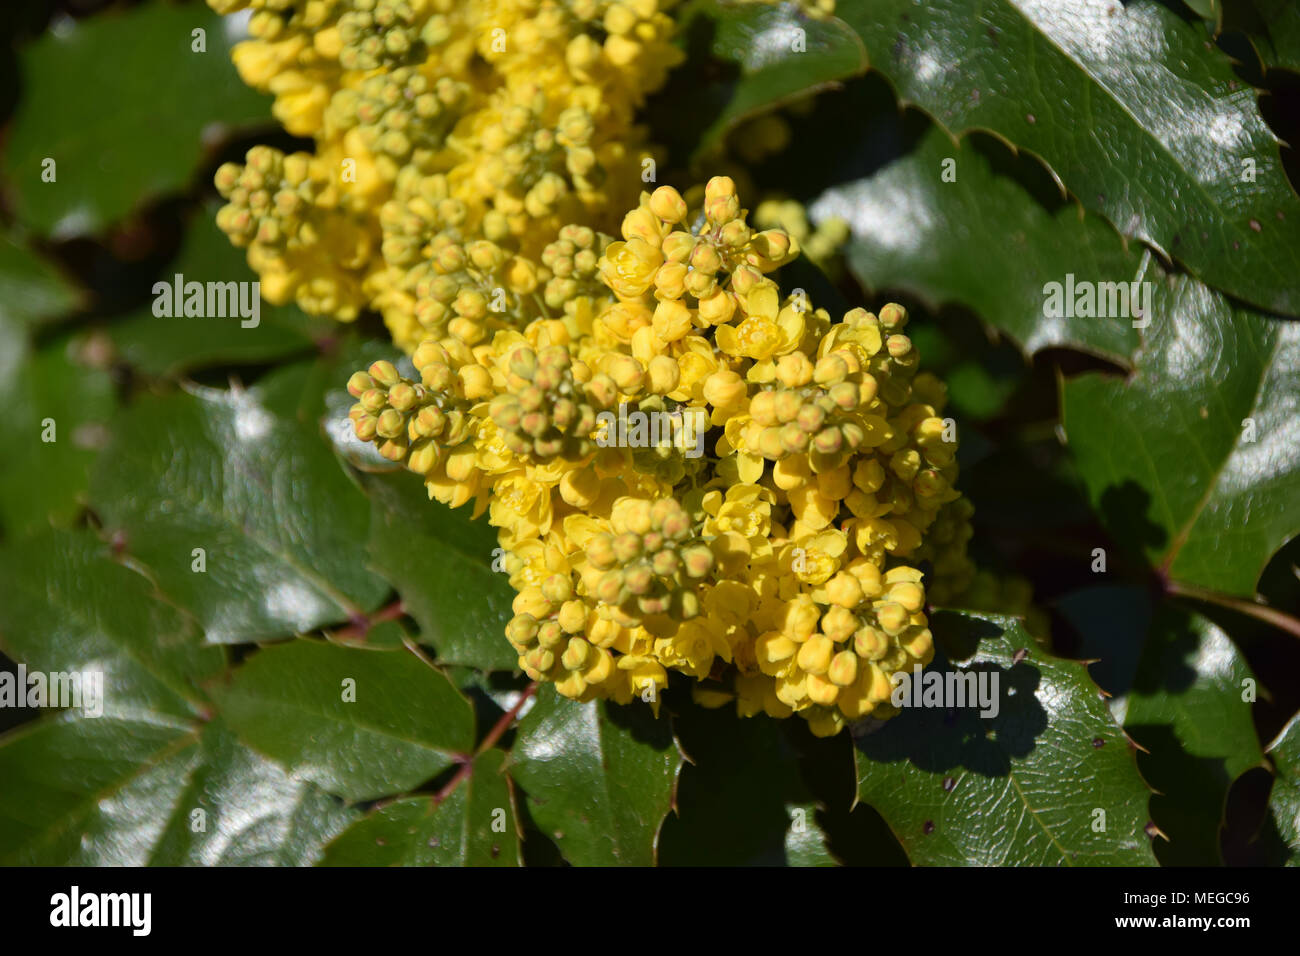 Evergreen Shrubs Of Mahonia With Little Yellow Flowers Stock Photo